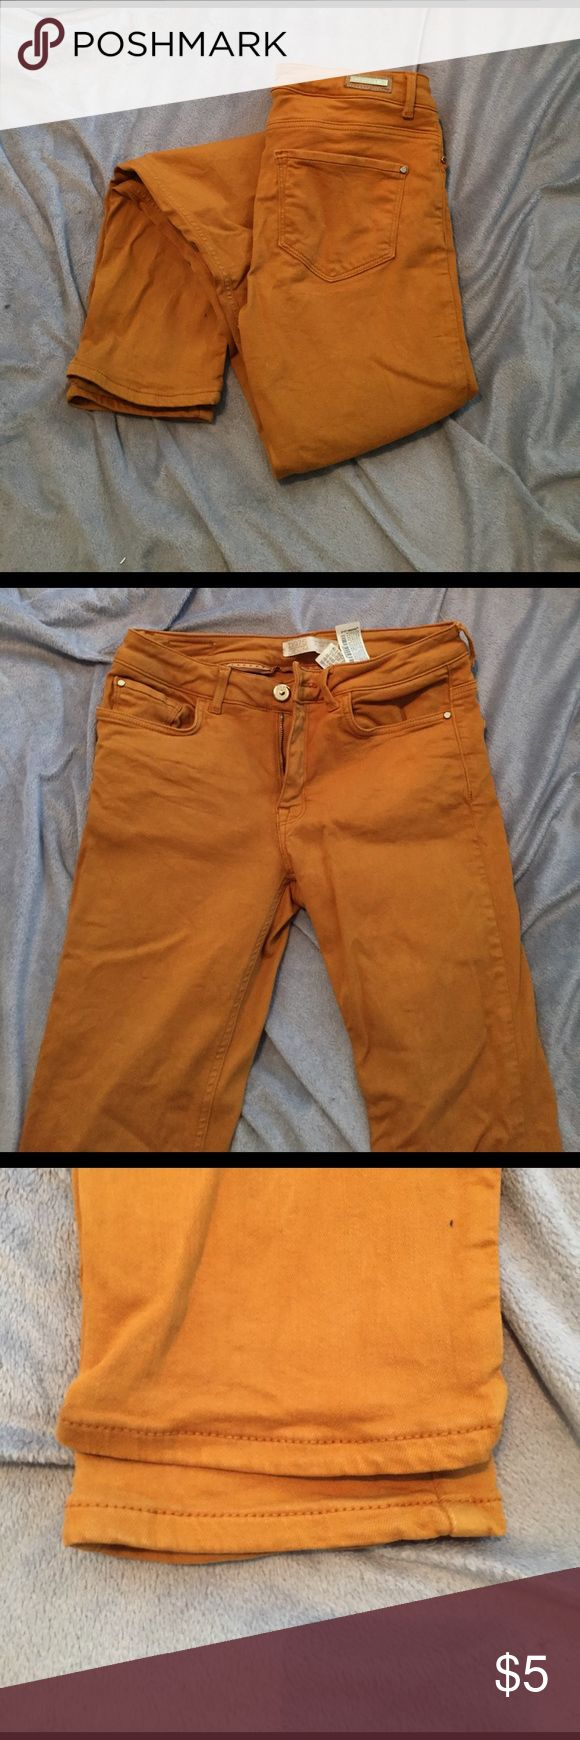 Zara mustard jeans. CLOSET CLEAR OUT! Mustard jeans. I barely wore this. The color was just not my style. Zara Jeans